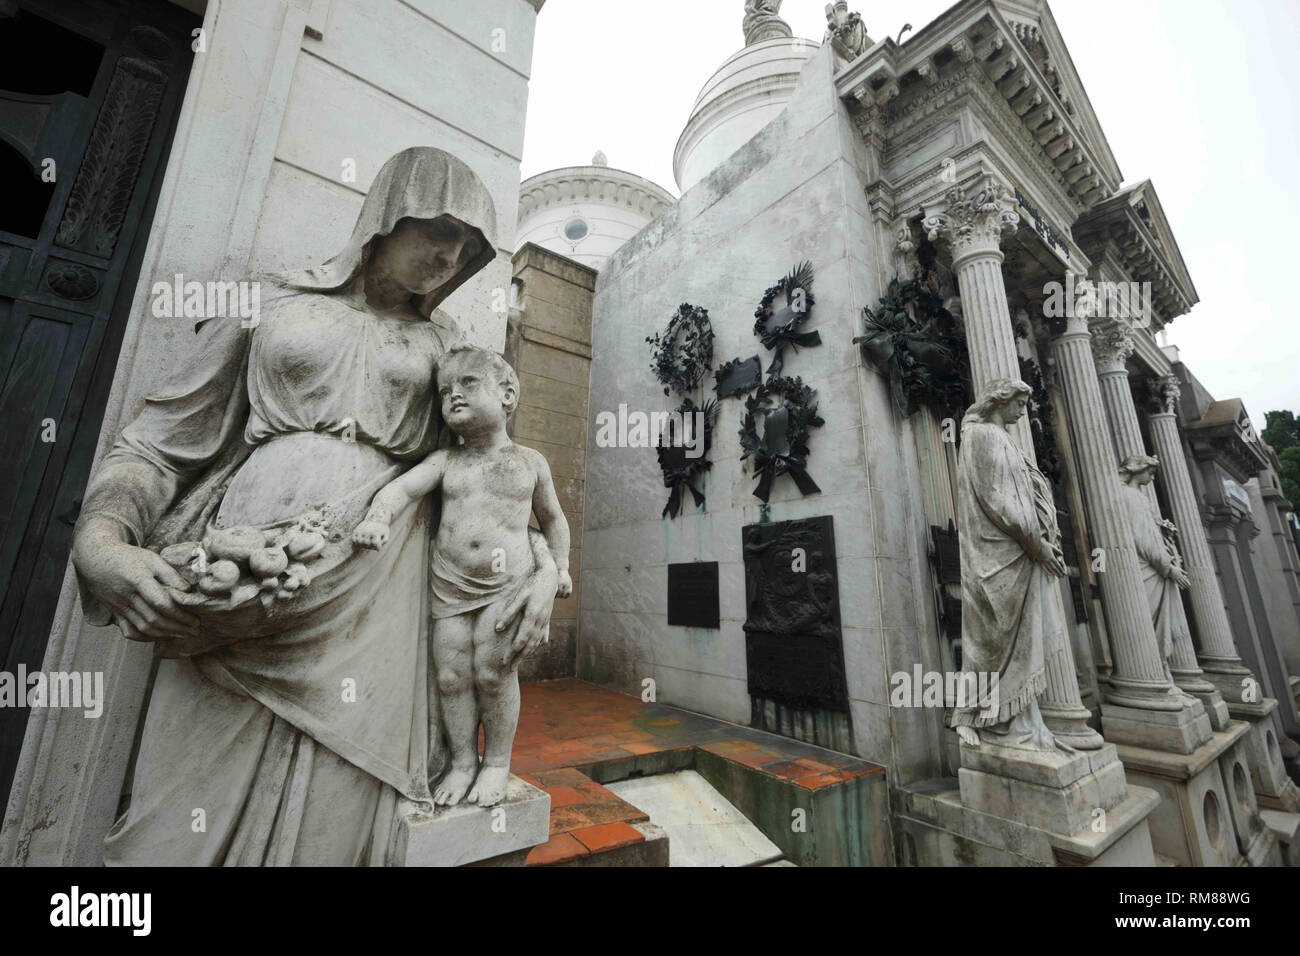 Recoleta cemetery is the most visited site in Buenos Aires, Argentina - Stock Image